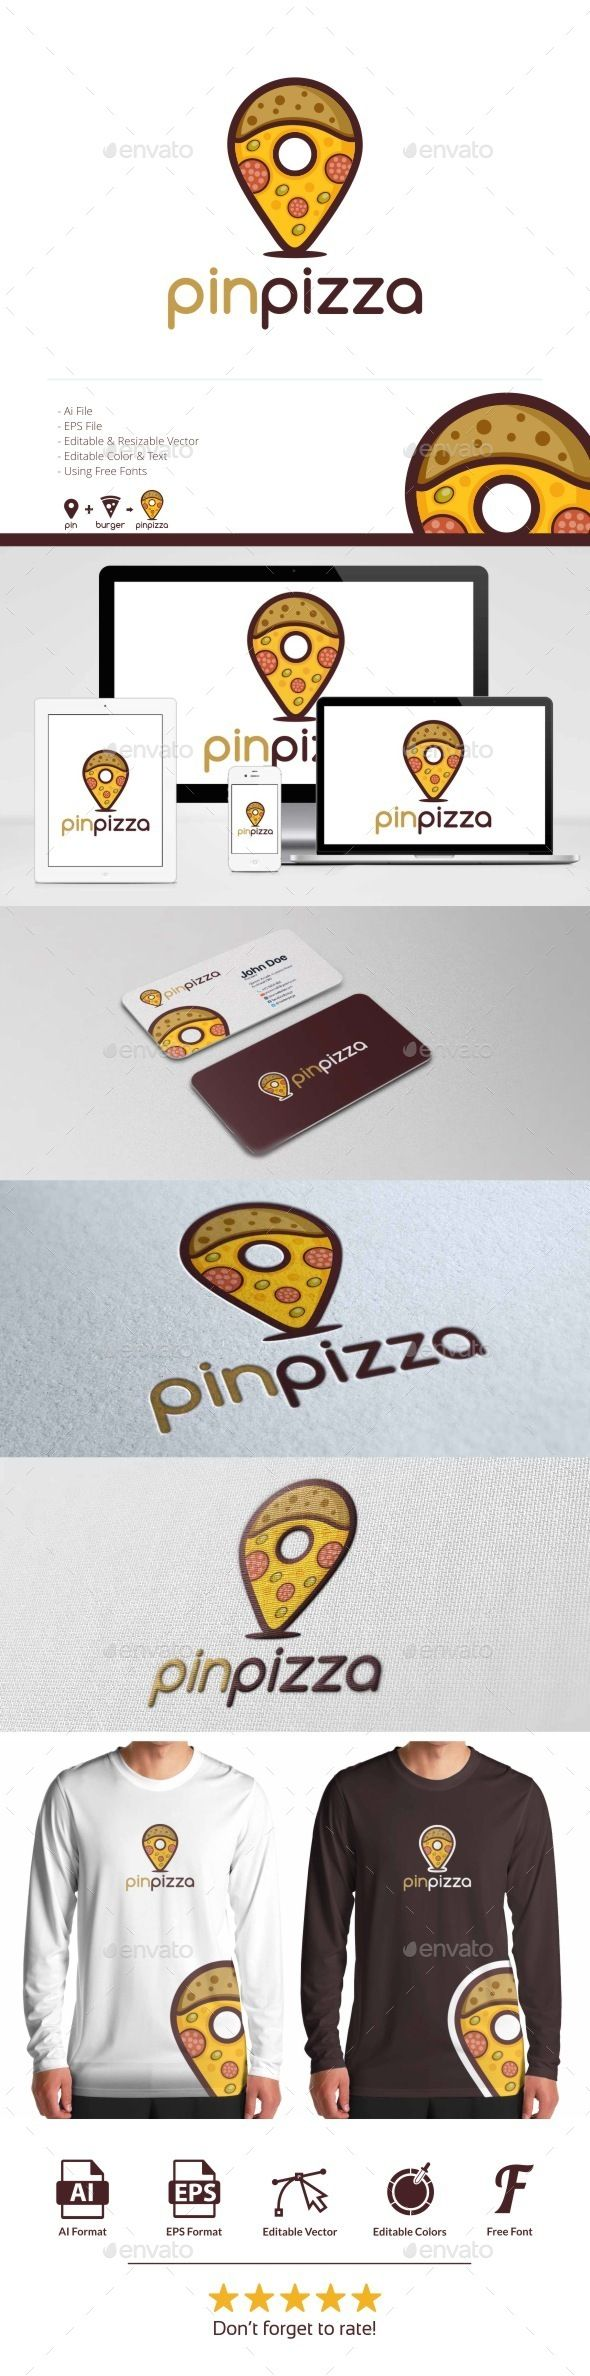 Pin Pizza Logo Template Vector EPS, AI. Download here: http://graphicriver.net/item/pin-pizza-logo/12053008?ref=ksioks